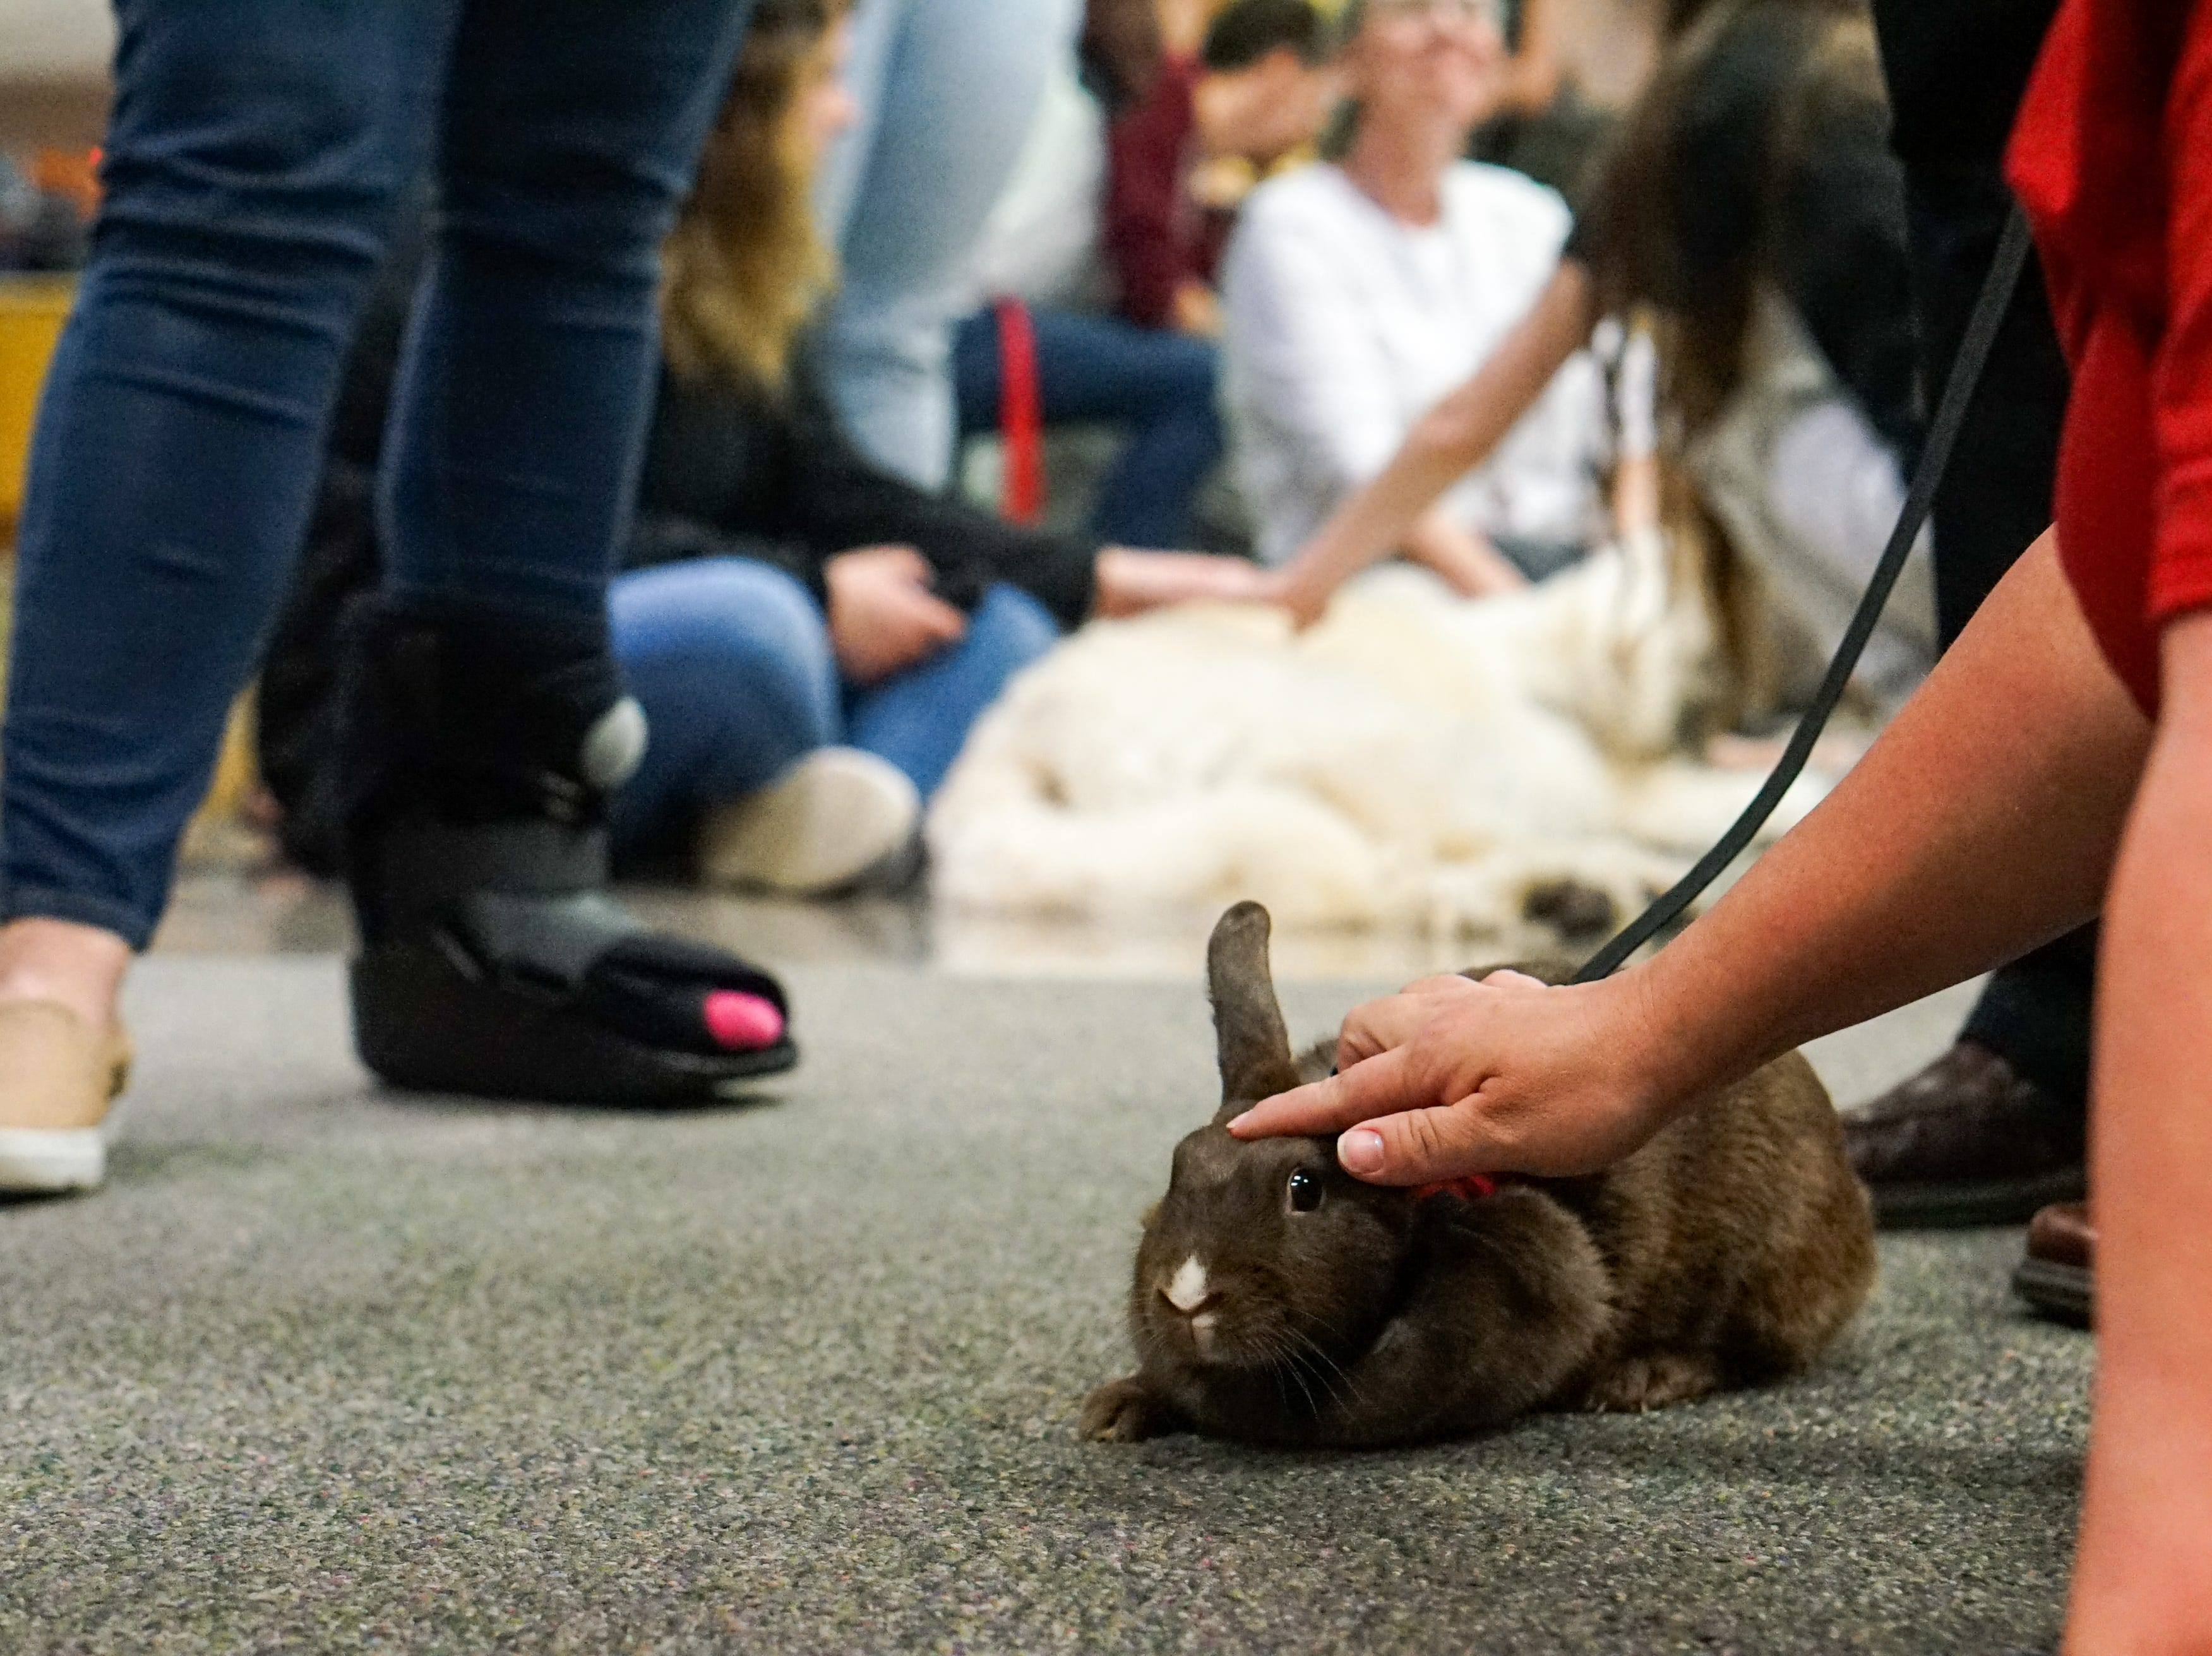 Students pet a therapy rabbit in the Edith Garland Dupré Library Wednesday, May 8, 2019. The University of Louisiana at Lafayette helps students to relieve stress during finals week by bringing therapy animals, to the library as part of Stress Relief Week. The therapy dogs are provided by Pet Partners of Acadiana, a non-profit organization with registered therapy animals, including birds, miniature horses, rabbits and  llamas.